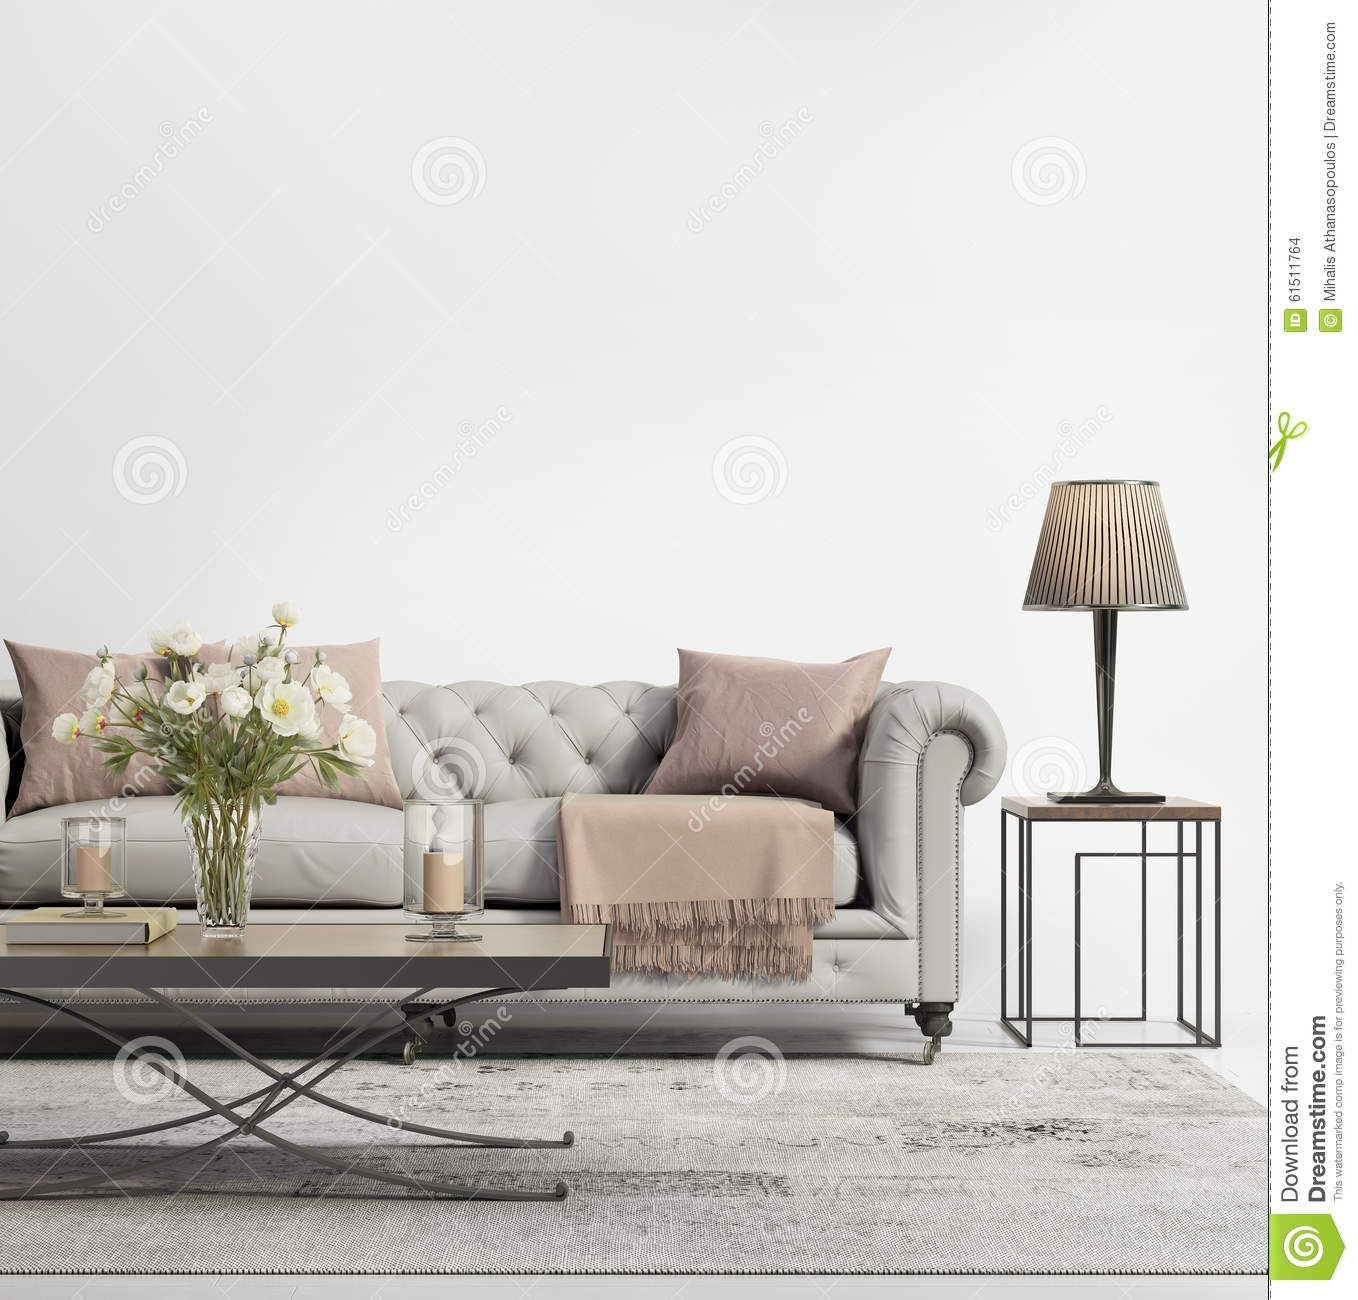 Contemporary Elegant Chic Living Room With Grey Tufted Sofa Stock Illustration  Illustration Of